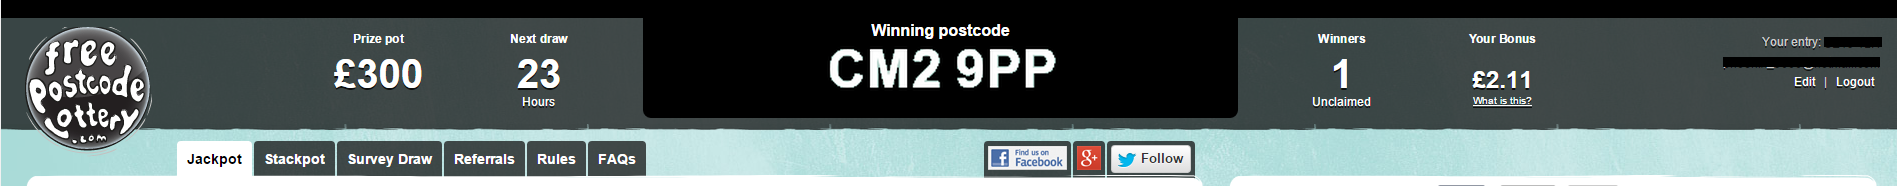 free postcode lottery website